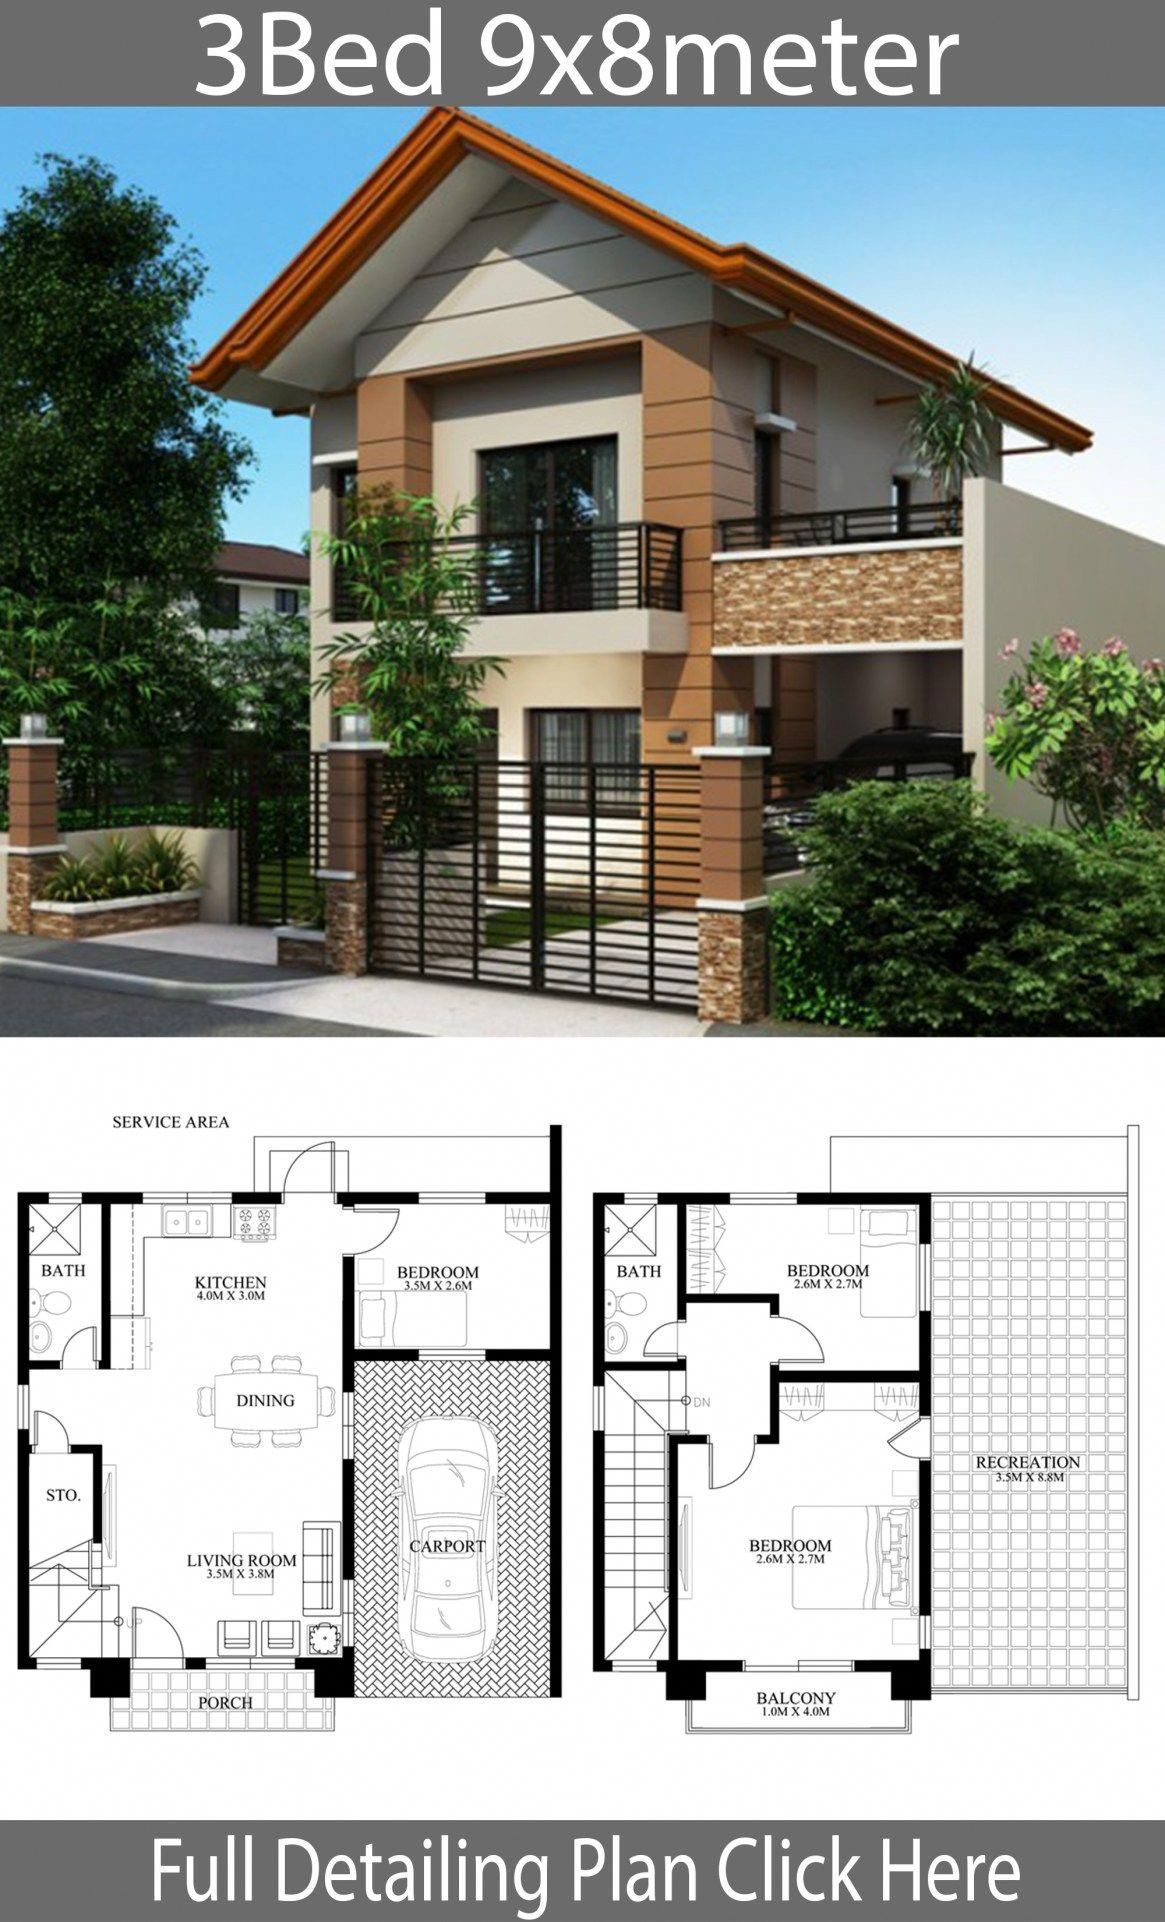 Home Design Plan 9x8m With 3 Bedrooms Home Design With Plansearch Maison In 2020 Philippines House Design Architectural House Plans 2 Storey House Design